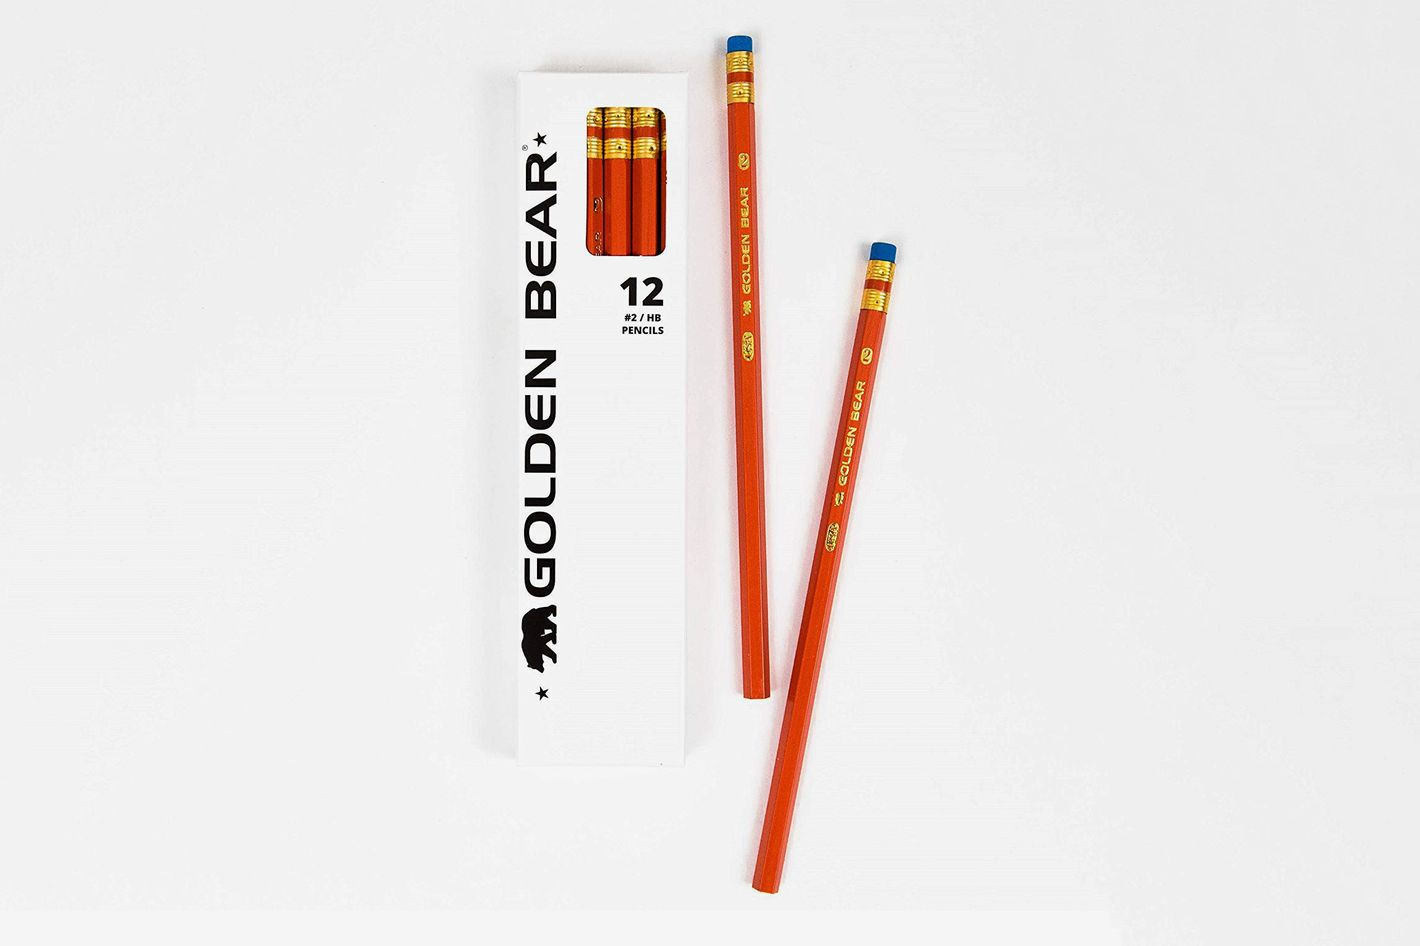 Palomino Golden Bear Orange #2 Pencils, 36-Pack